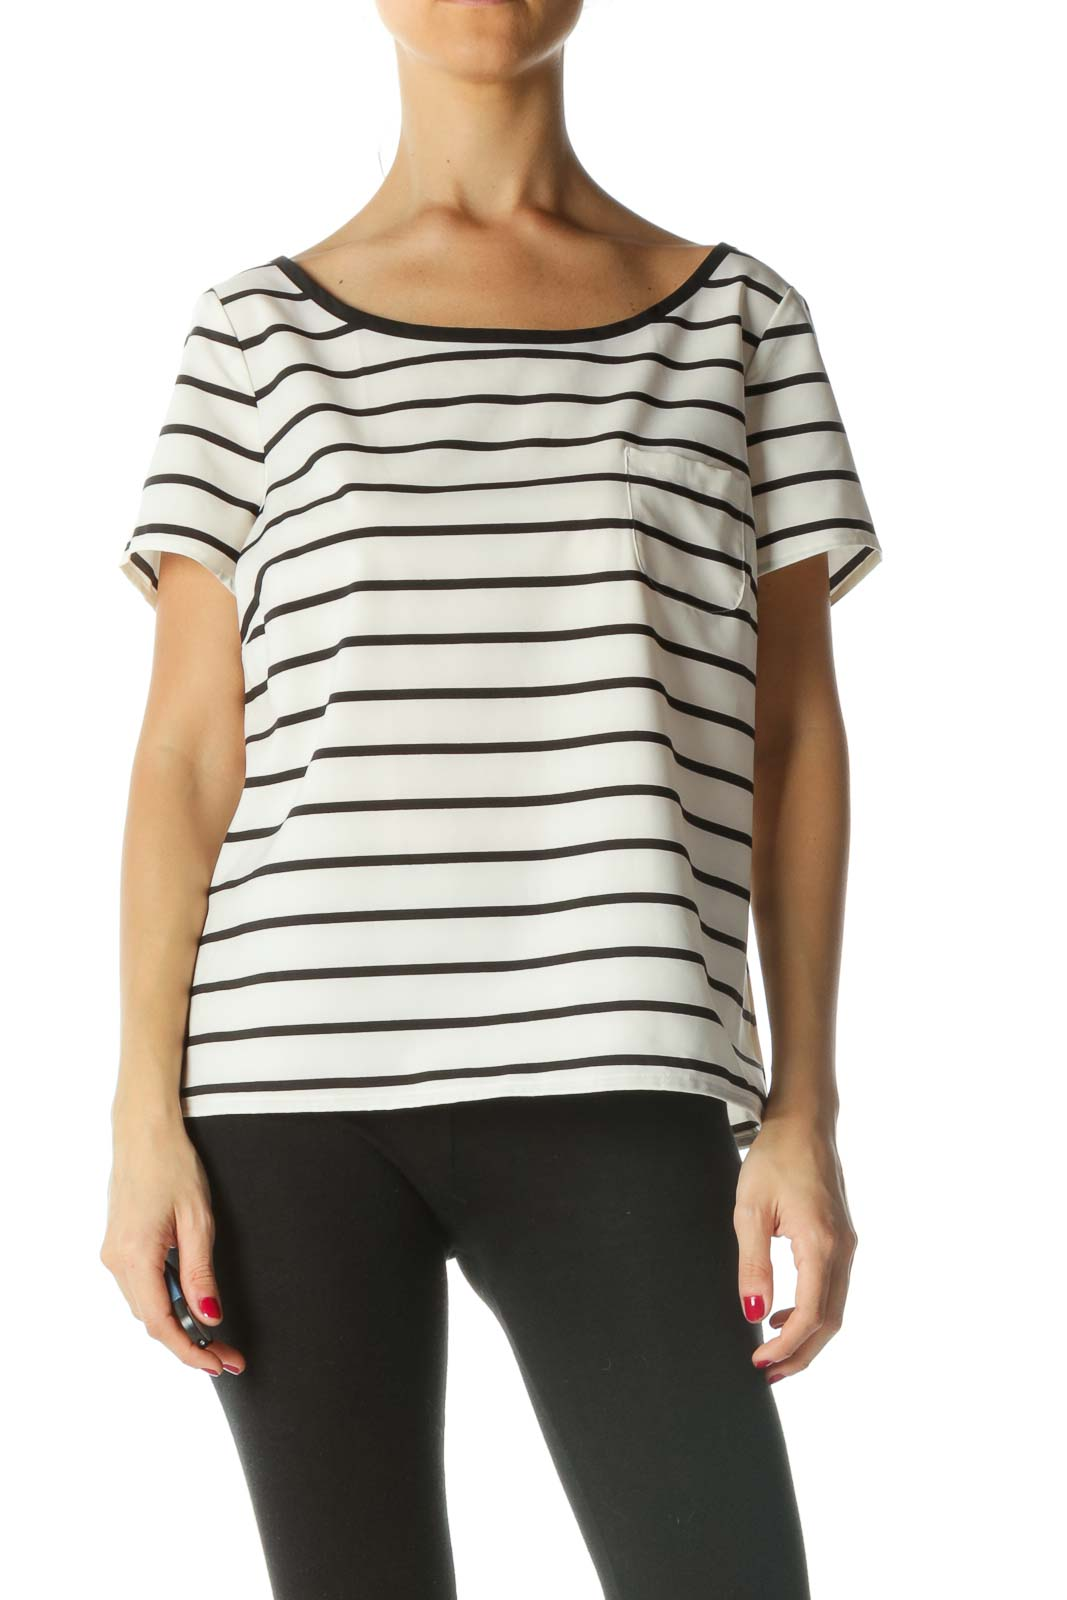 Black Cream Striped Short-Sleeve Top Front